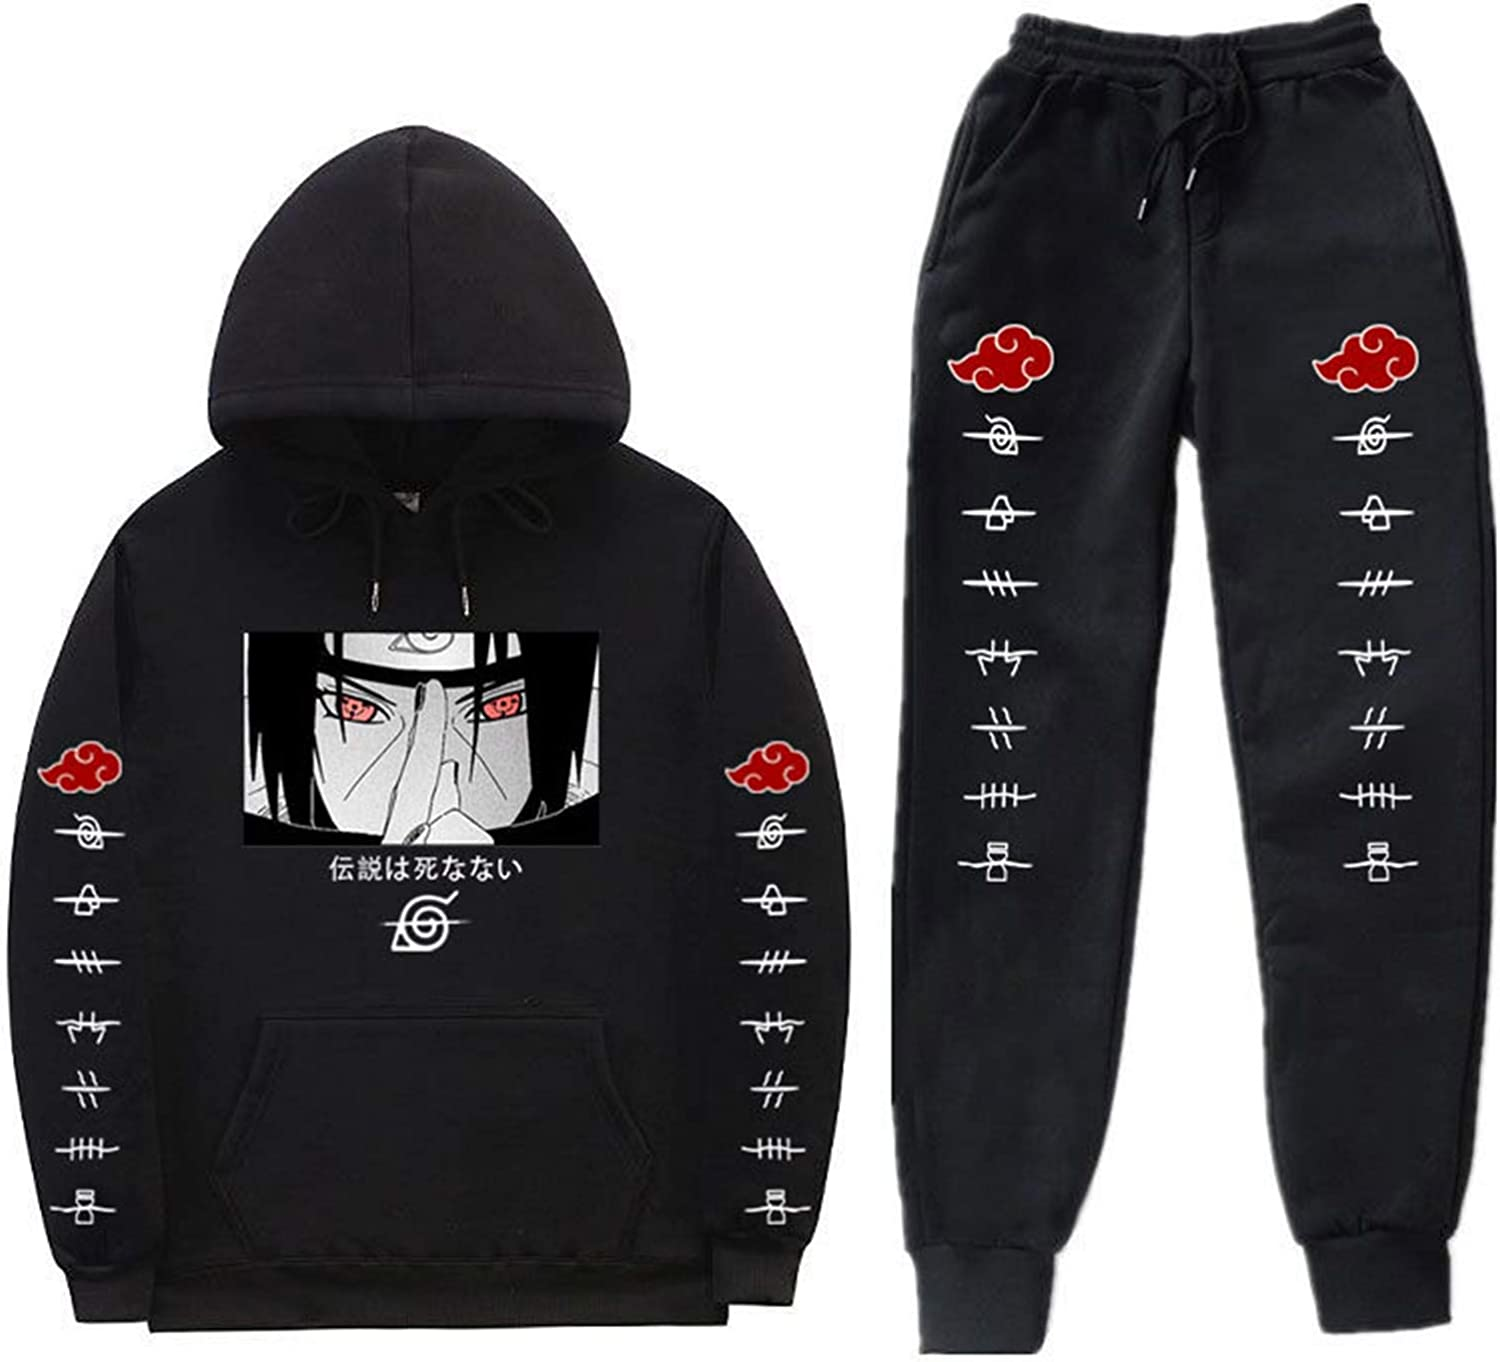 Anime Naruto Hoodie and Sweatpants Set Unisex 2 Piece Pullover Sweatshirt Jogger Pants Suit Casual Tracksuit for Men Women